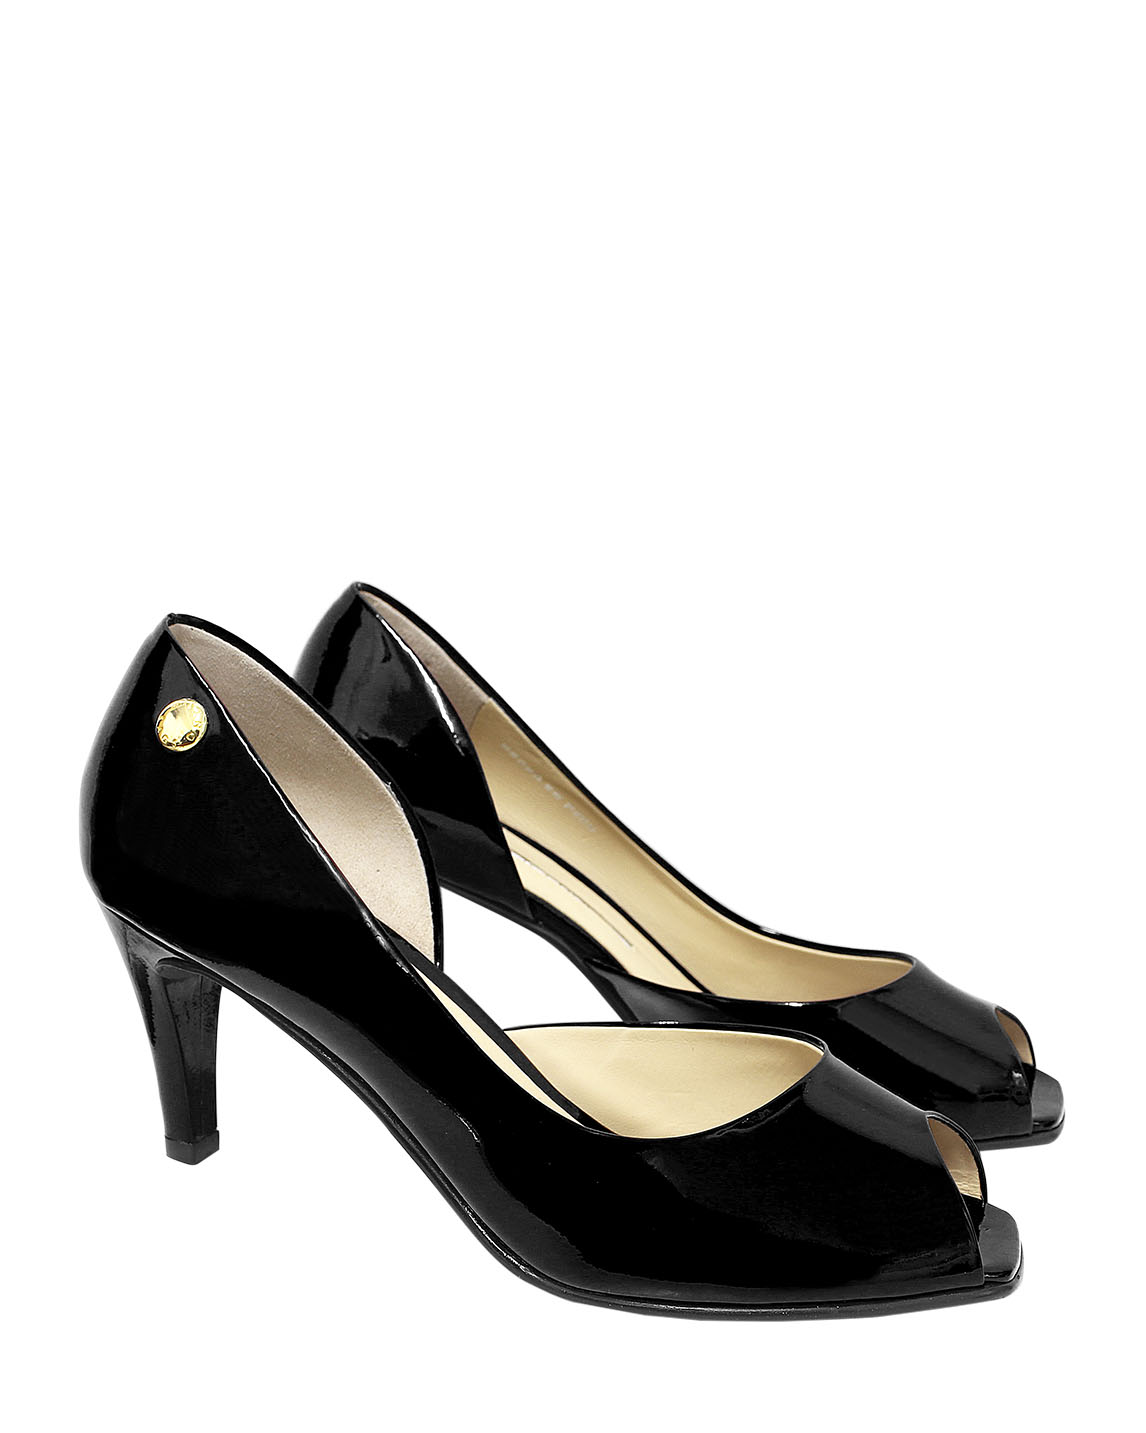 Calzado Peep Toe FRP-7849 Color Negro